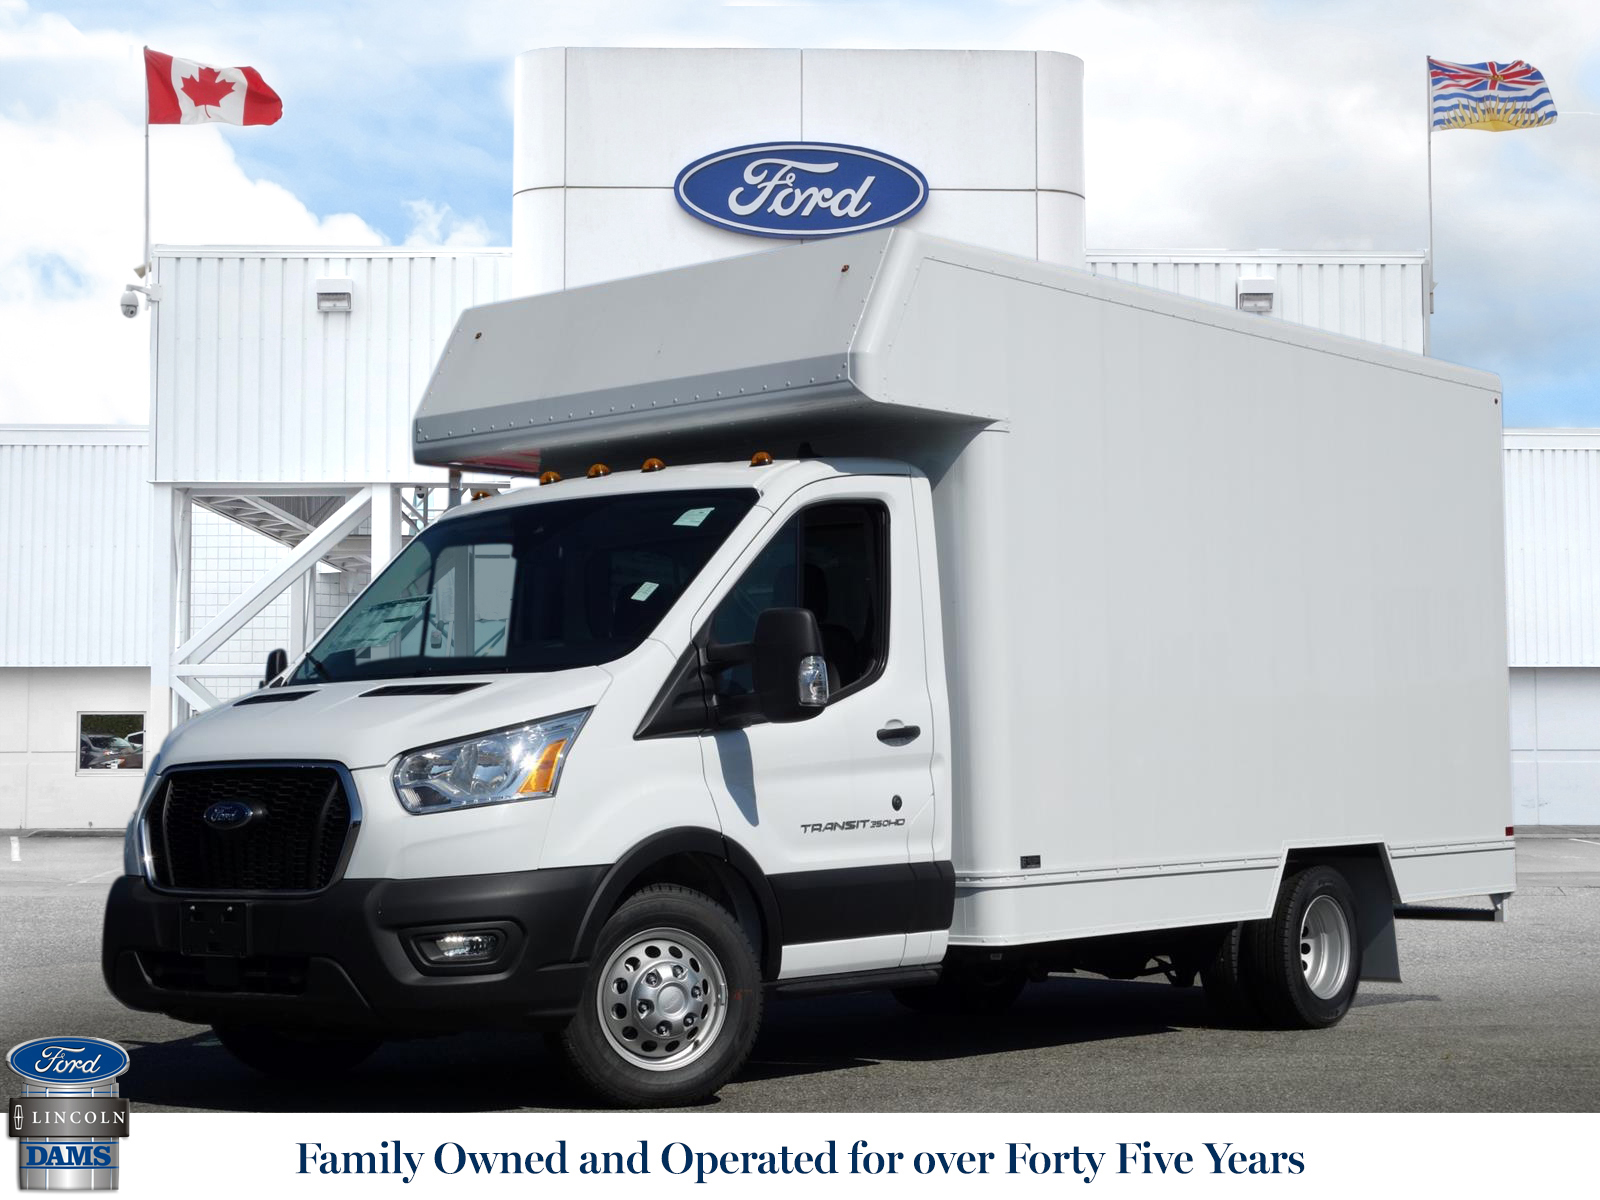 2020 Ford Transit Chassis Chassis Cab